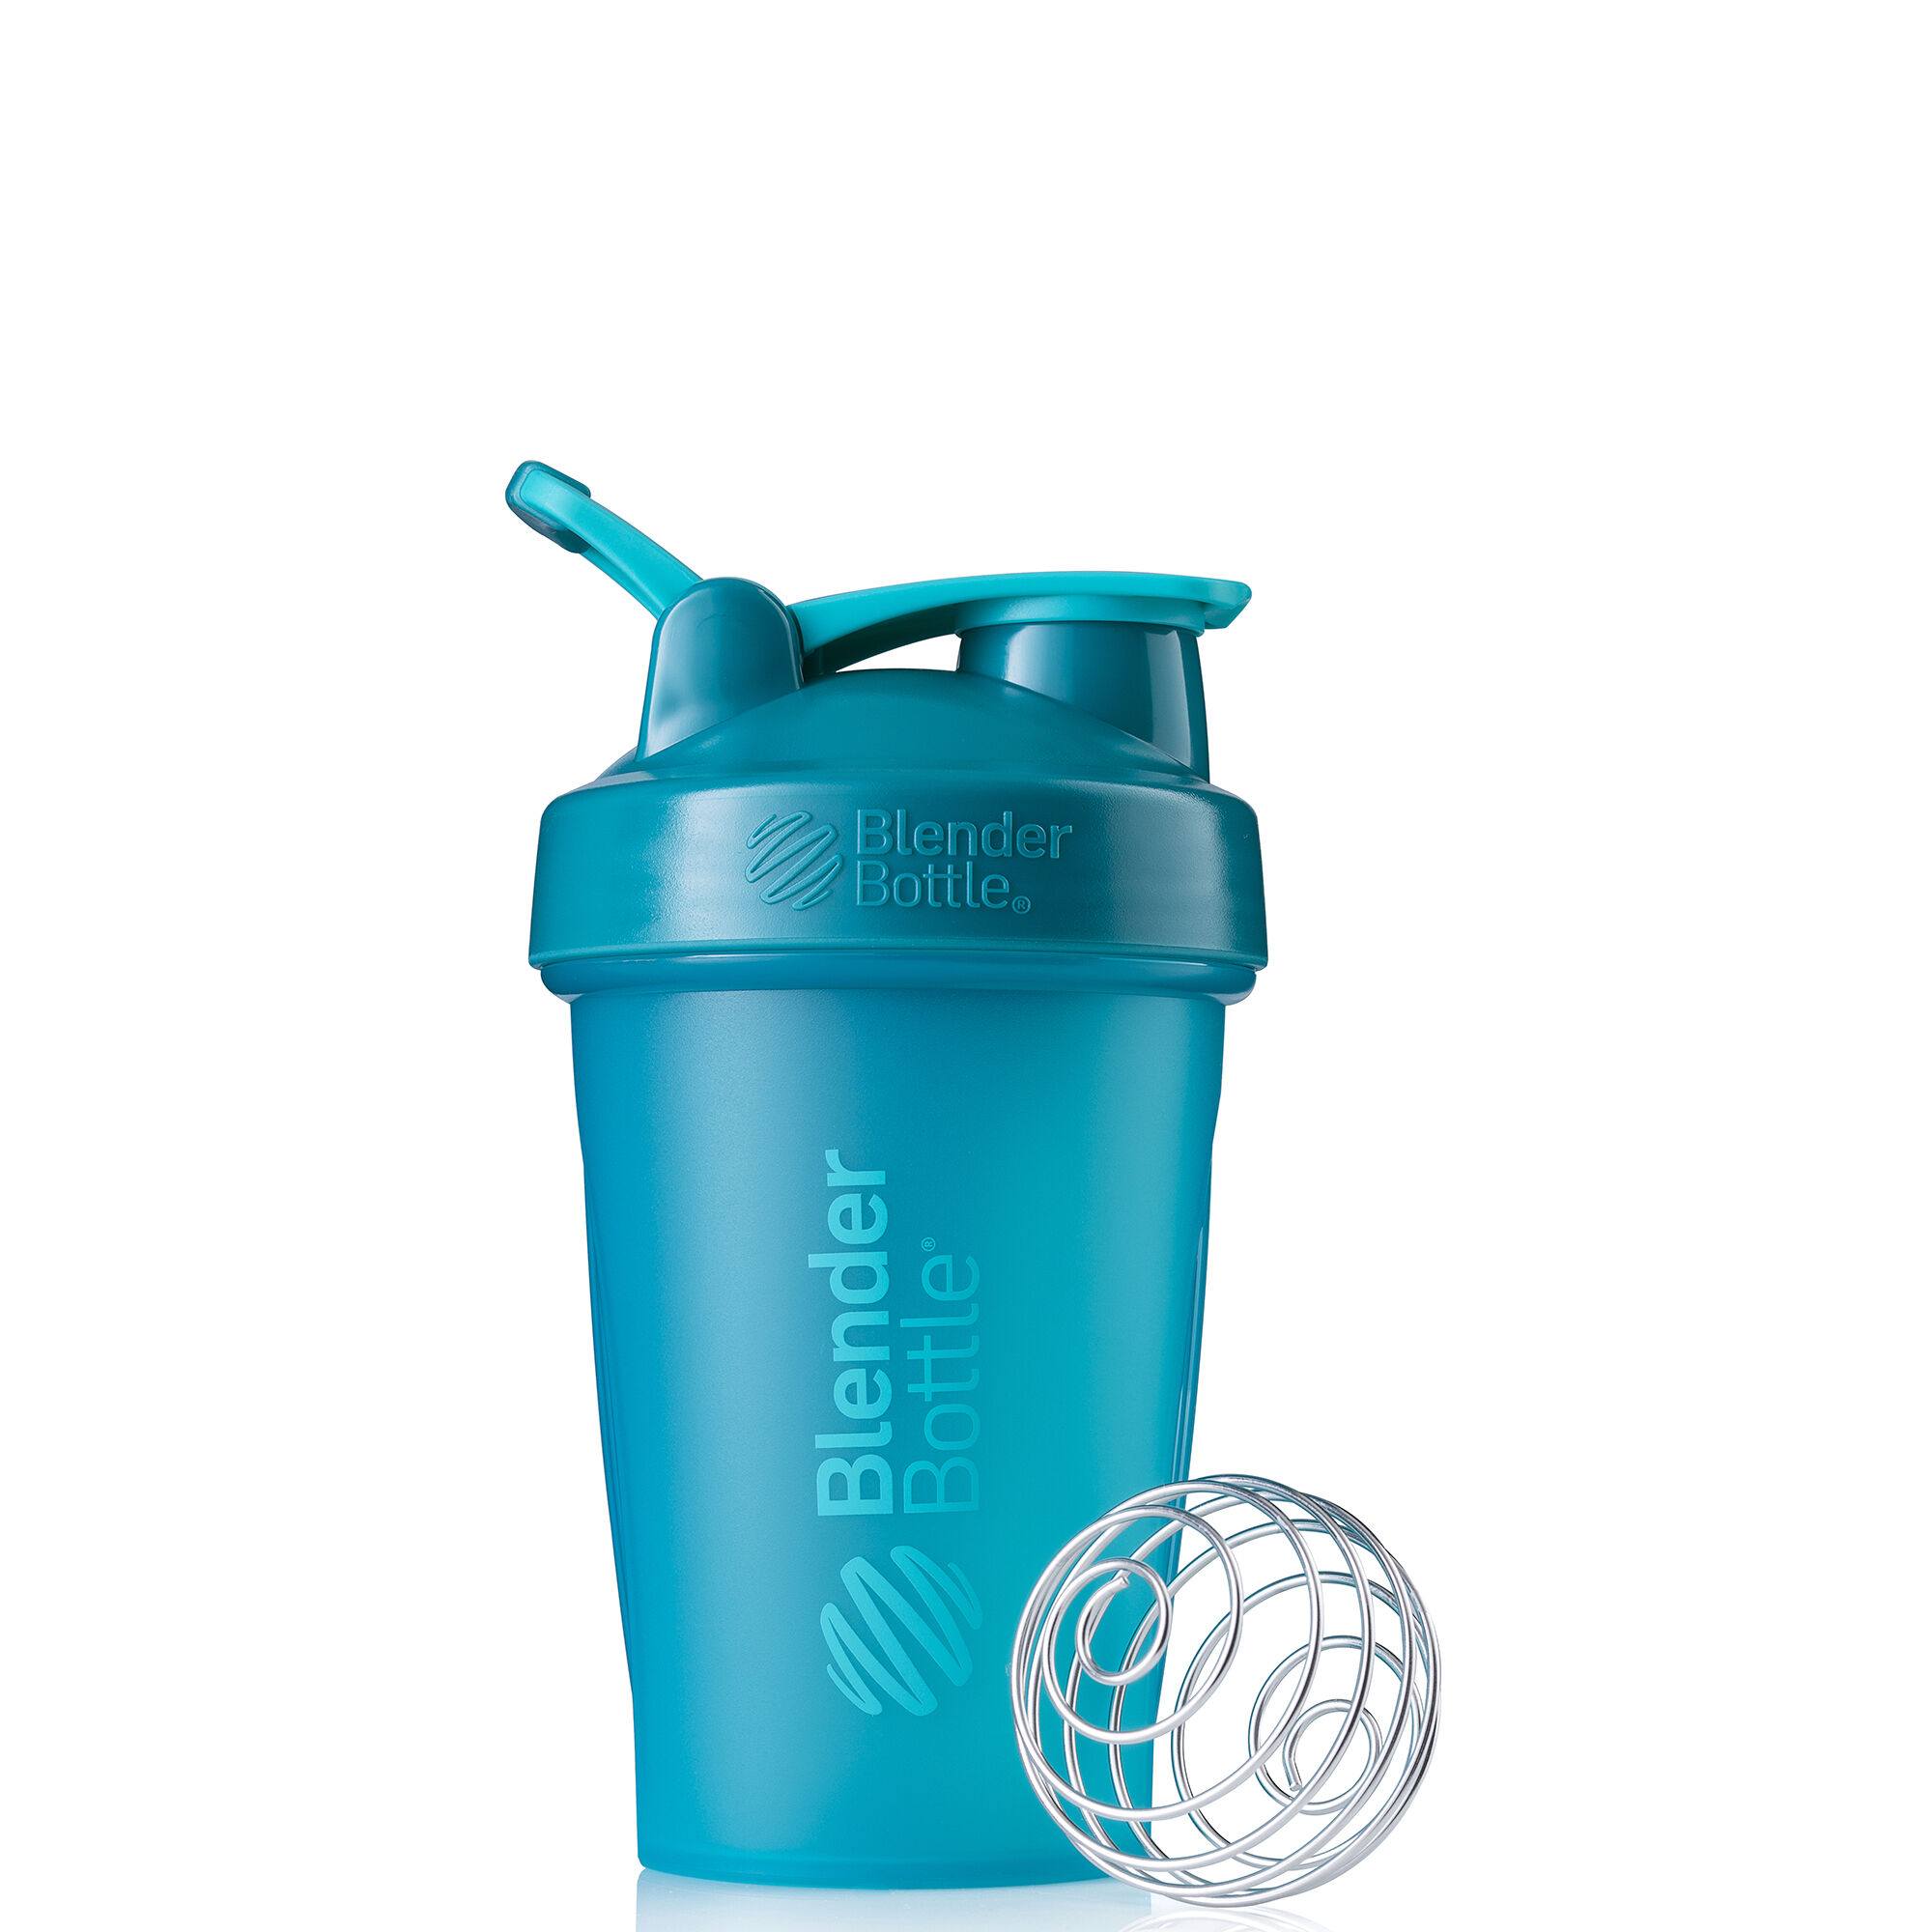 Blenderbottle20oz Classicg (w/ Loop) Teal Mixers Shakers And Bottles